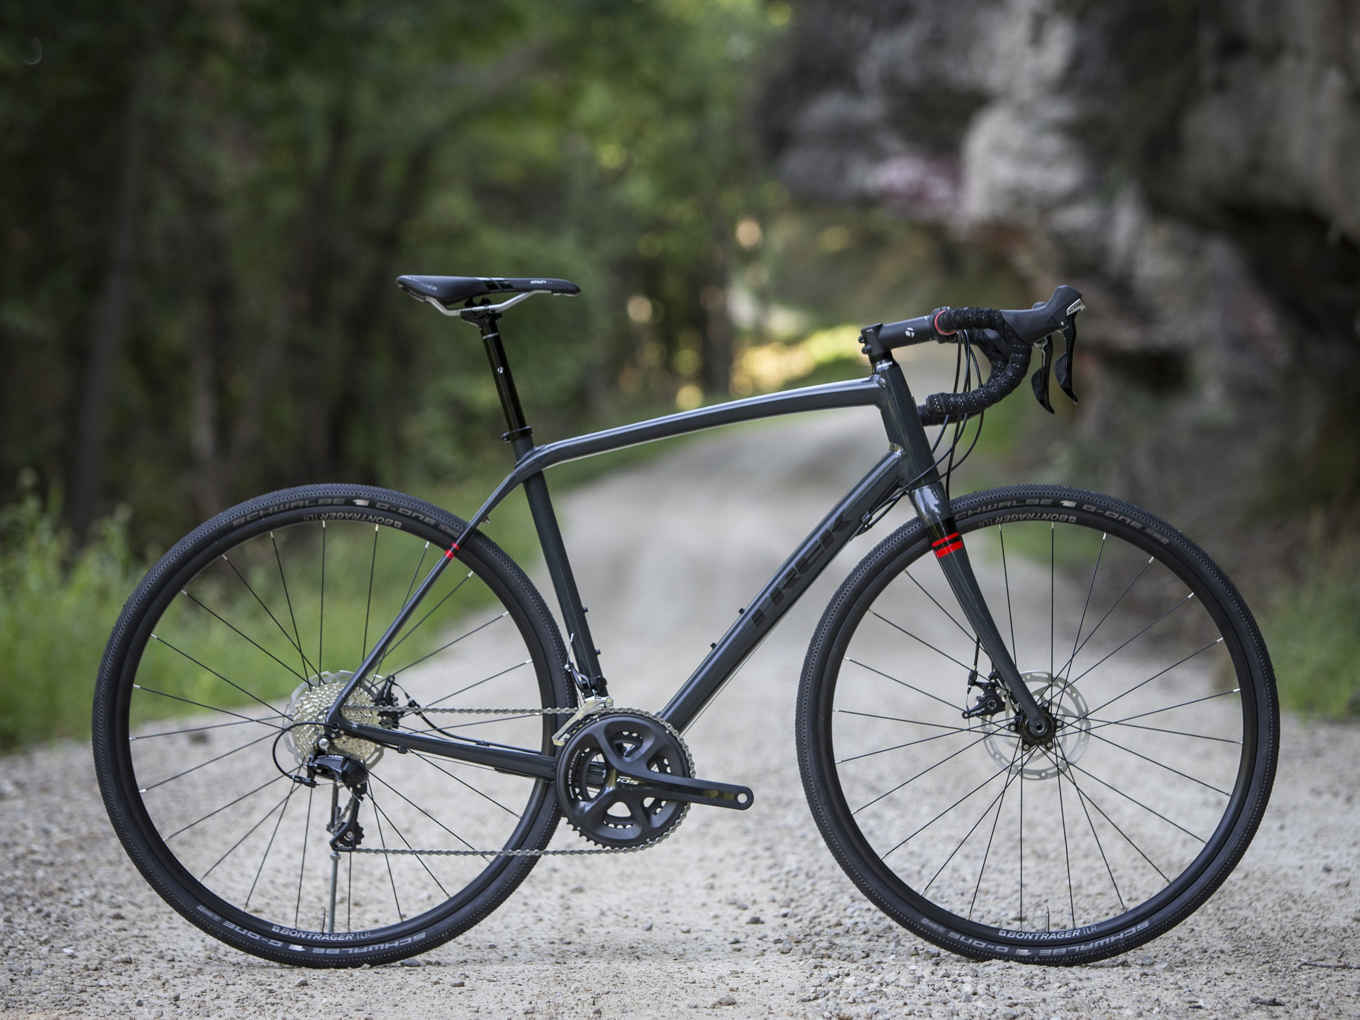 February Newsletter - A 4.81kg bike at under half price. Adventure, Cross and Gravel. Emonda disc, Scott Contessa disc, F8, S5 Etap, Scapin Classic.